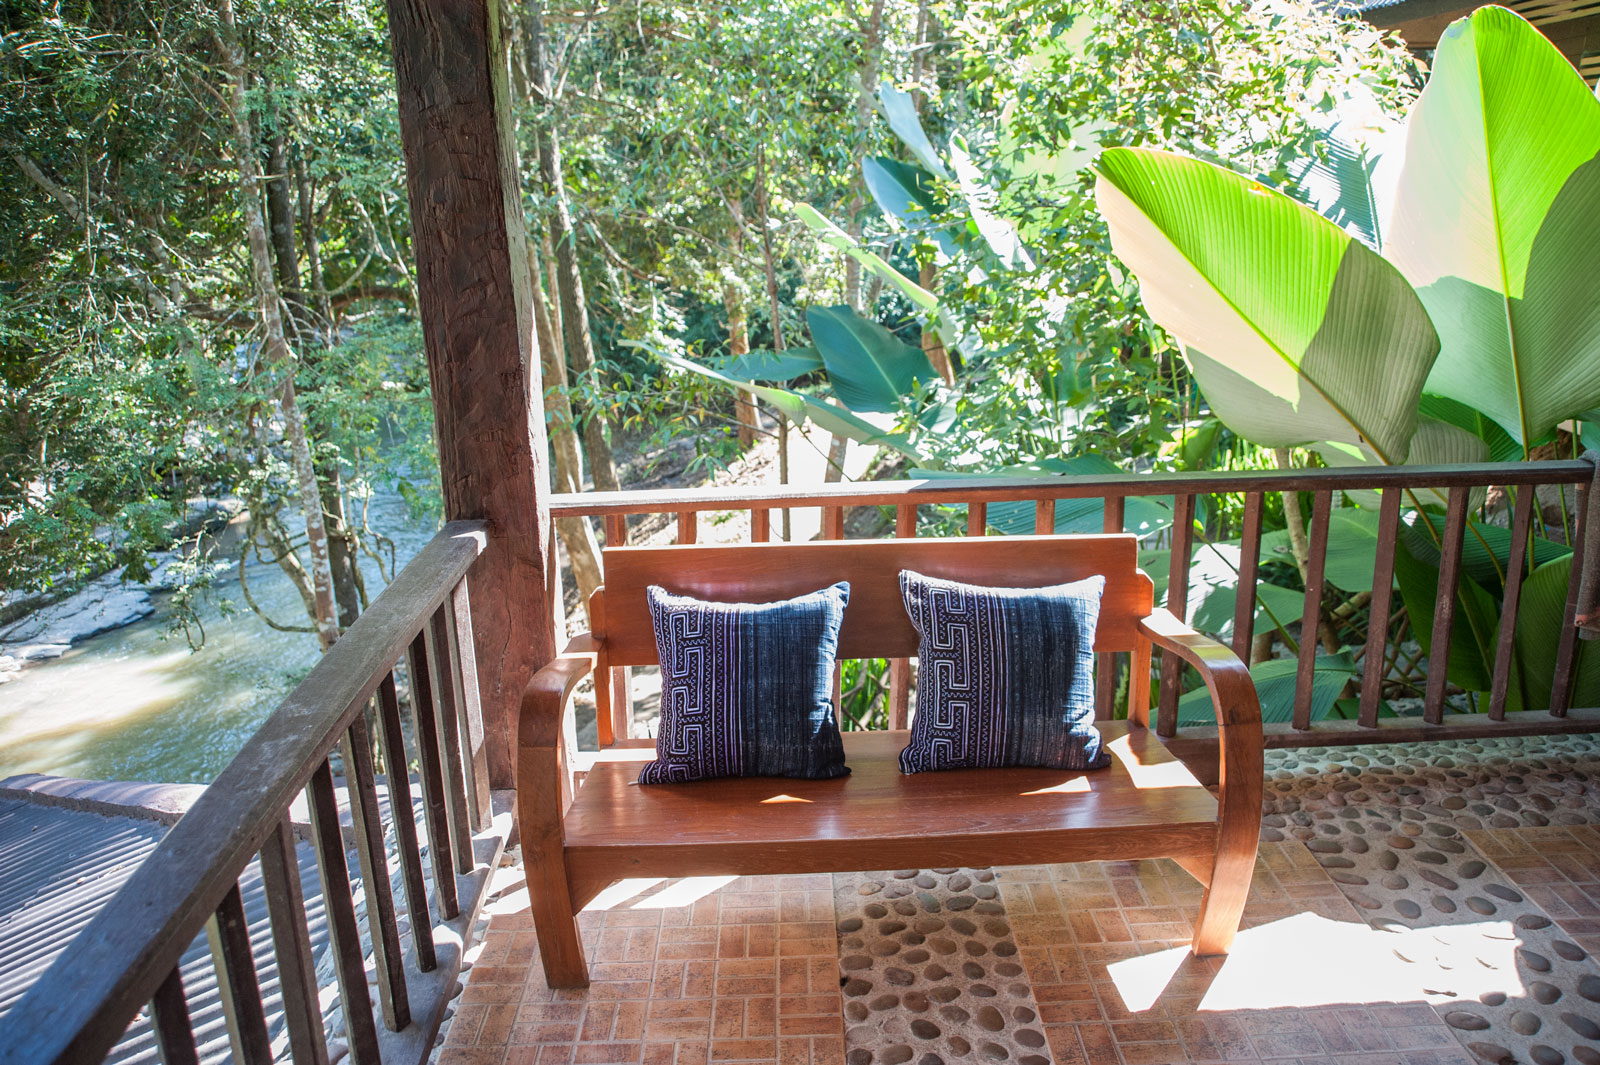 BAMBOO CABIN   1-5 Guests   • Queen Bed* • Mosquito net canopy • Detached, private bathroom • Outdoor seating area • Breakfast included • Fan  *can add up to 3 extra beds